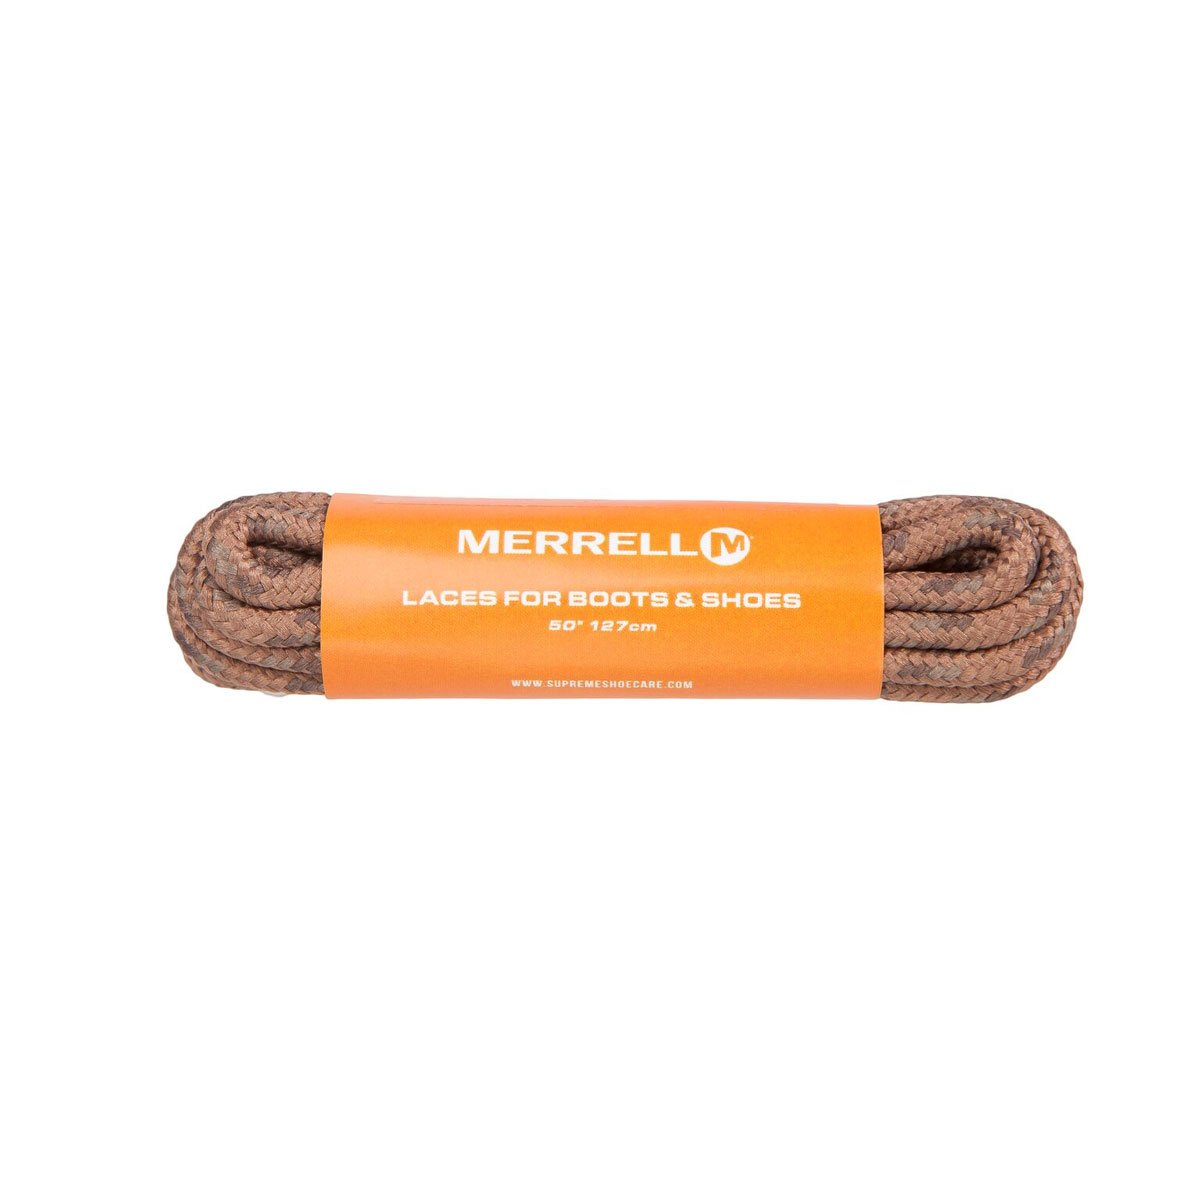 d9178cacca Merrell Laces Men's